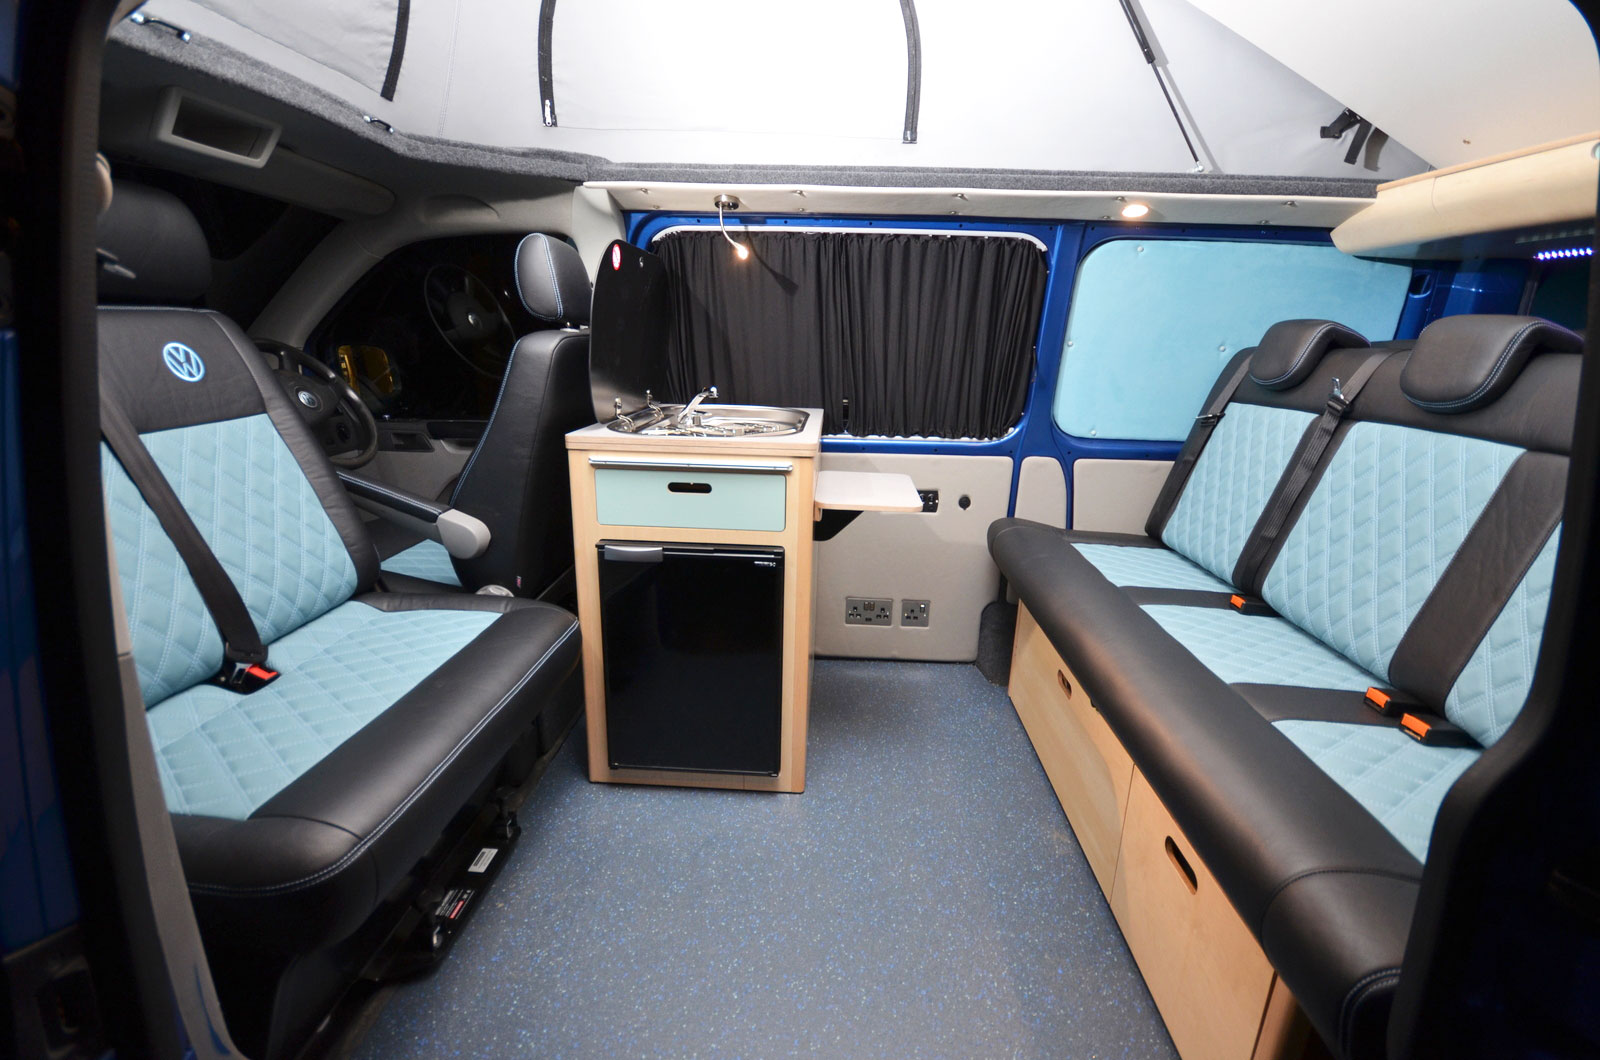 Inside campervan with sleek leather black and blue seating and kitchen cabinets and stand-alone kitchen unit